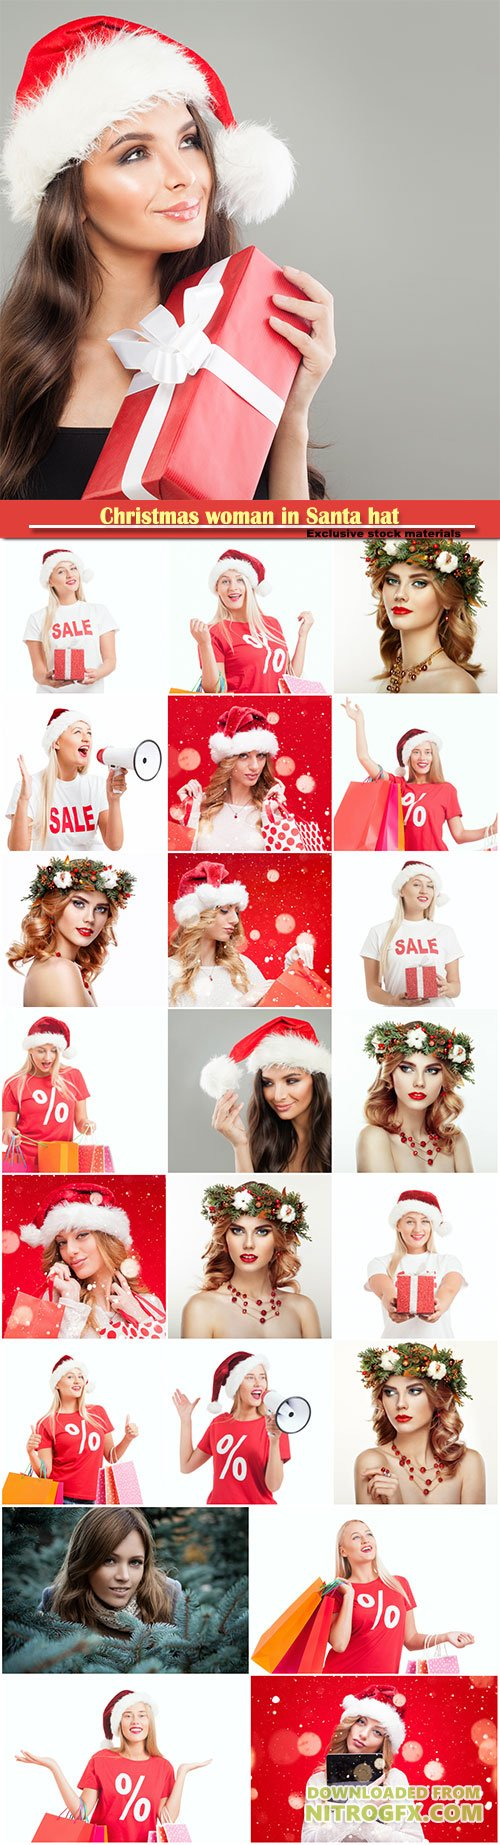 Christmas woman in Santa hat, woman with Christmas wreath